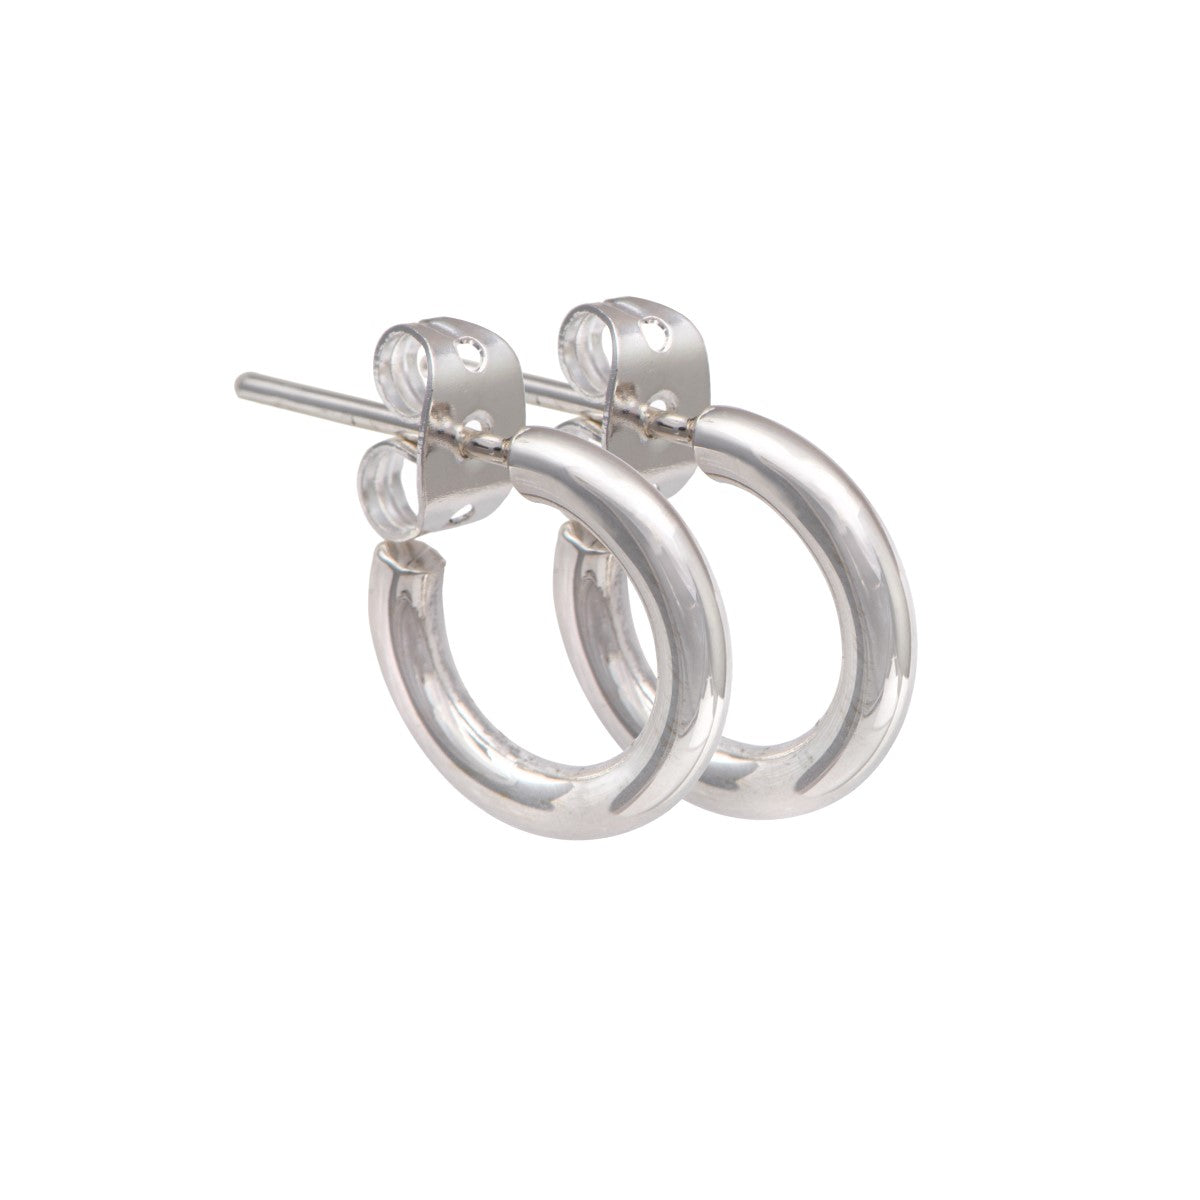 Small Sterling Silver Hoop Earrings with a Rounded Edge